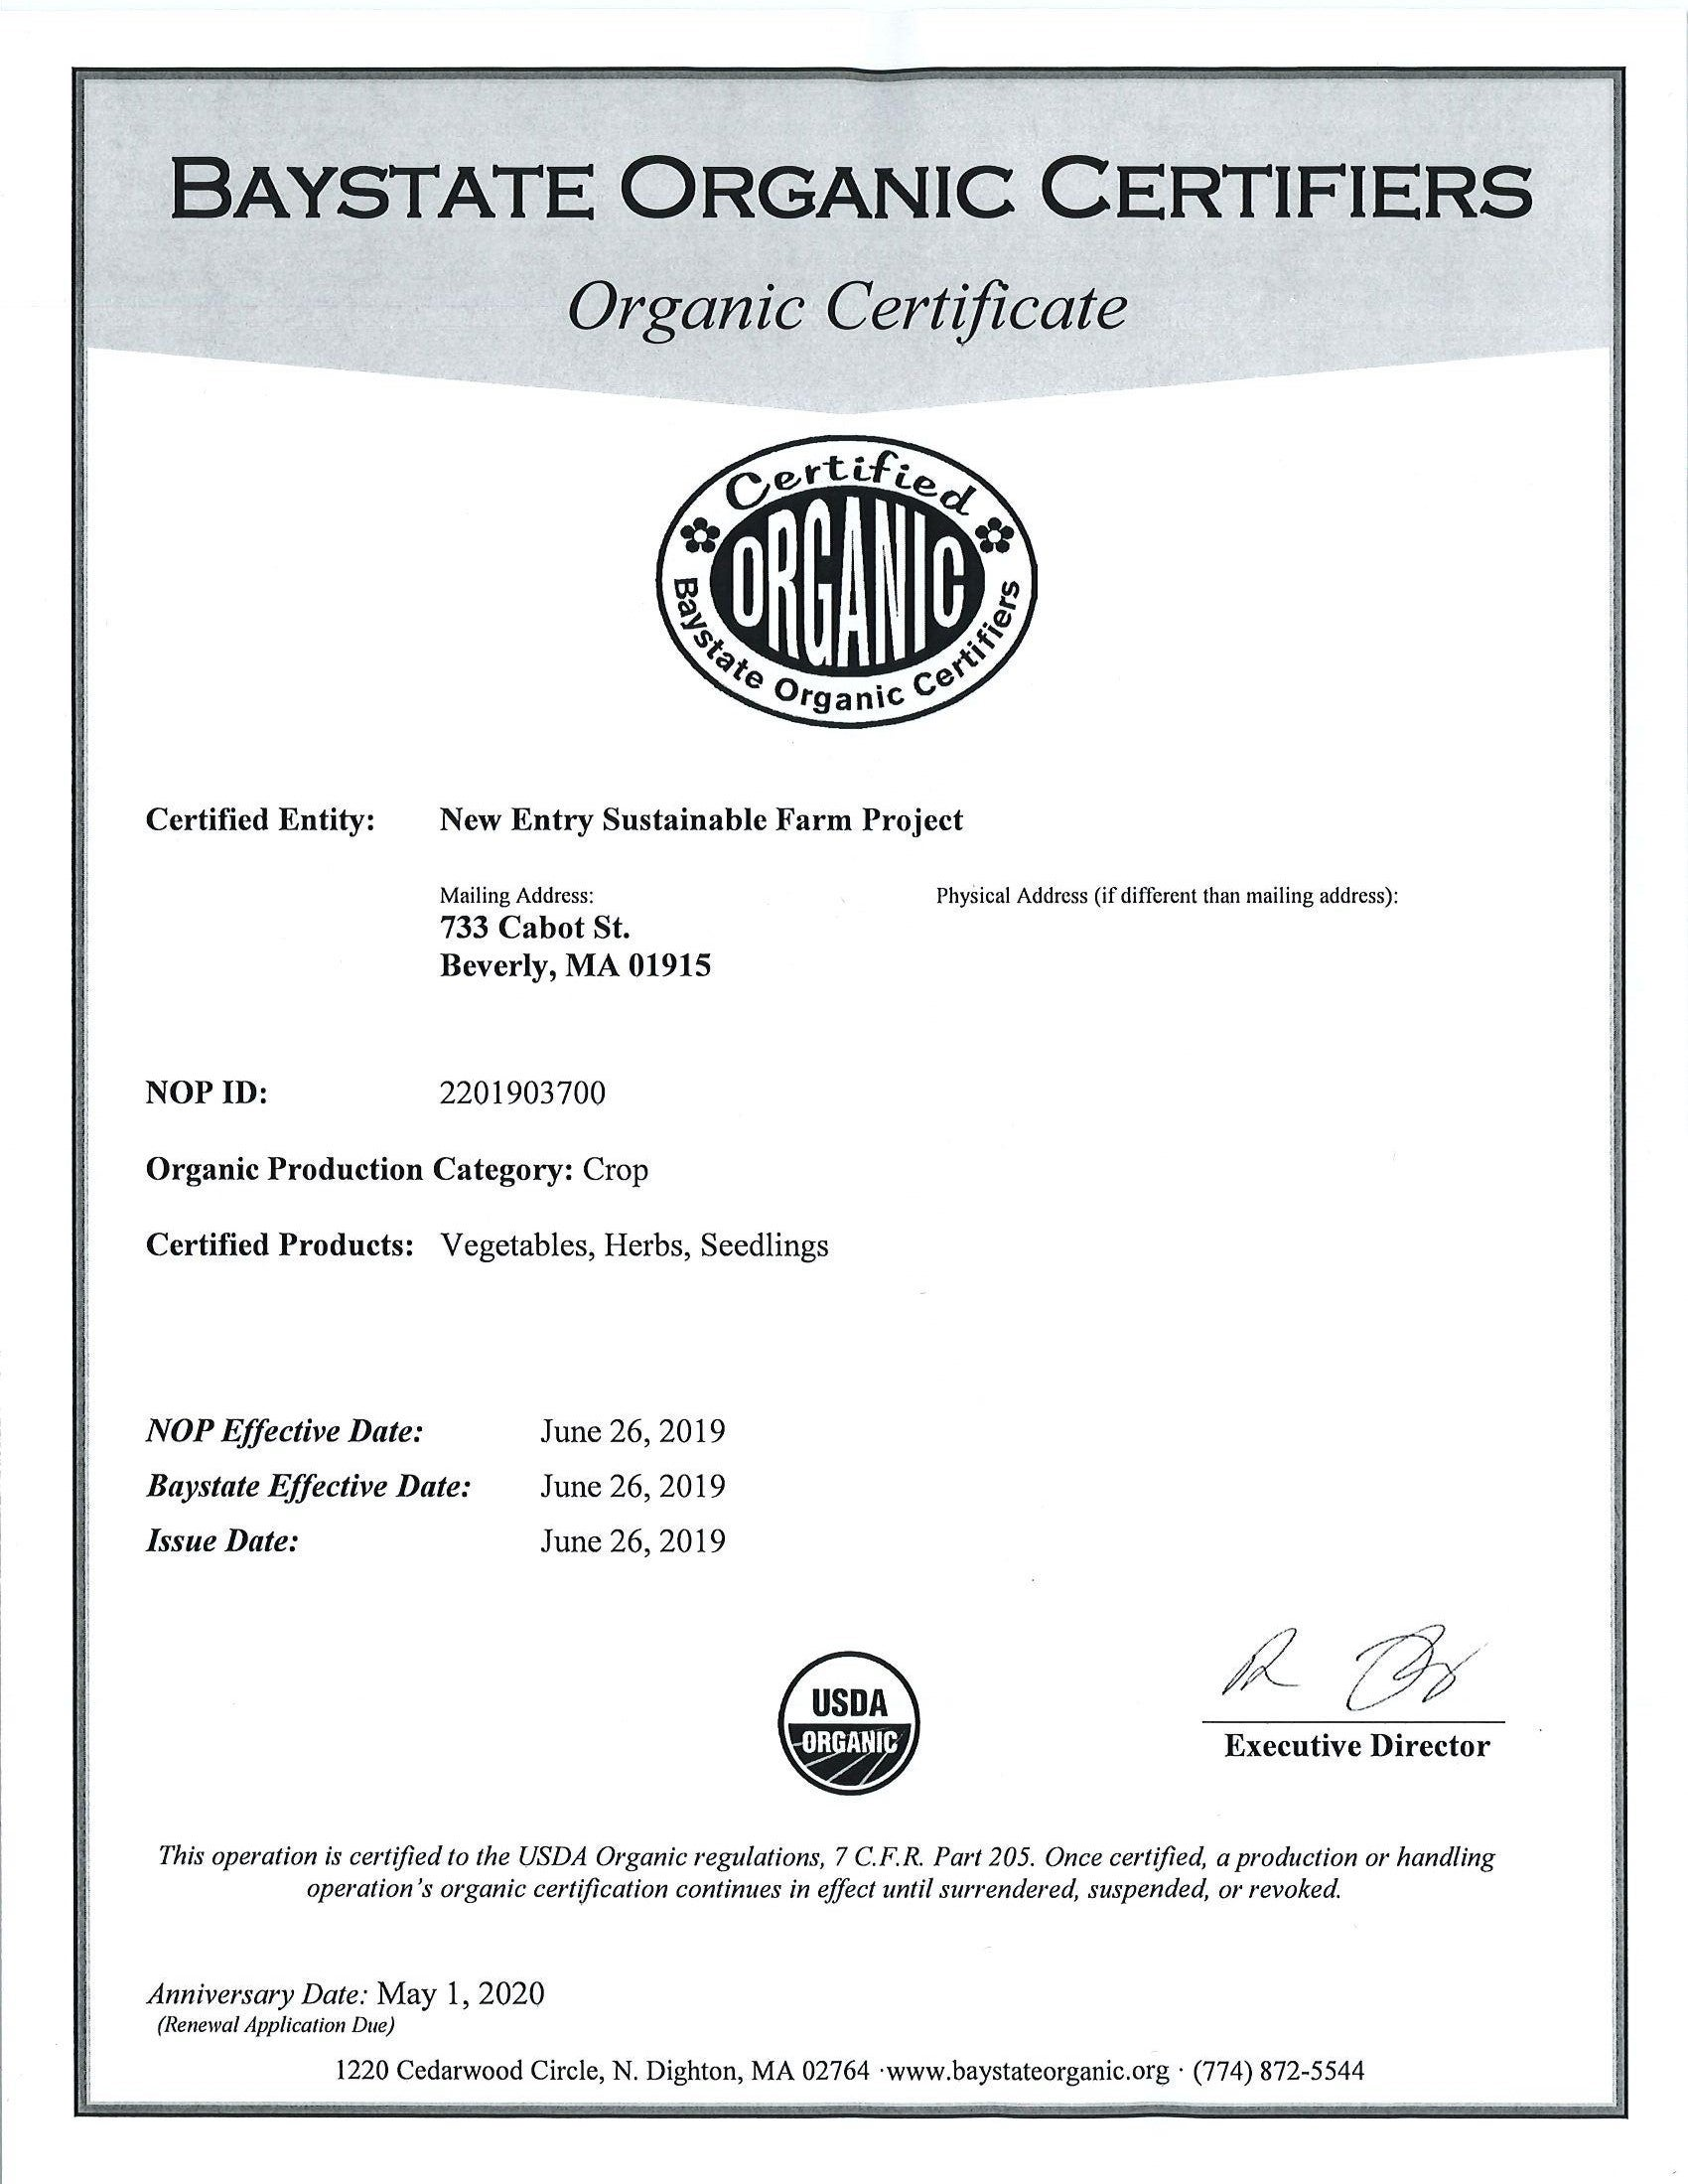 New Entry Receives Usda Organic Certification New Entry Sustainable Farming Project